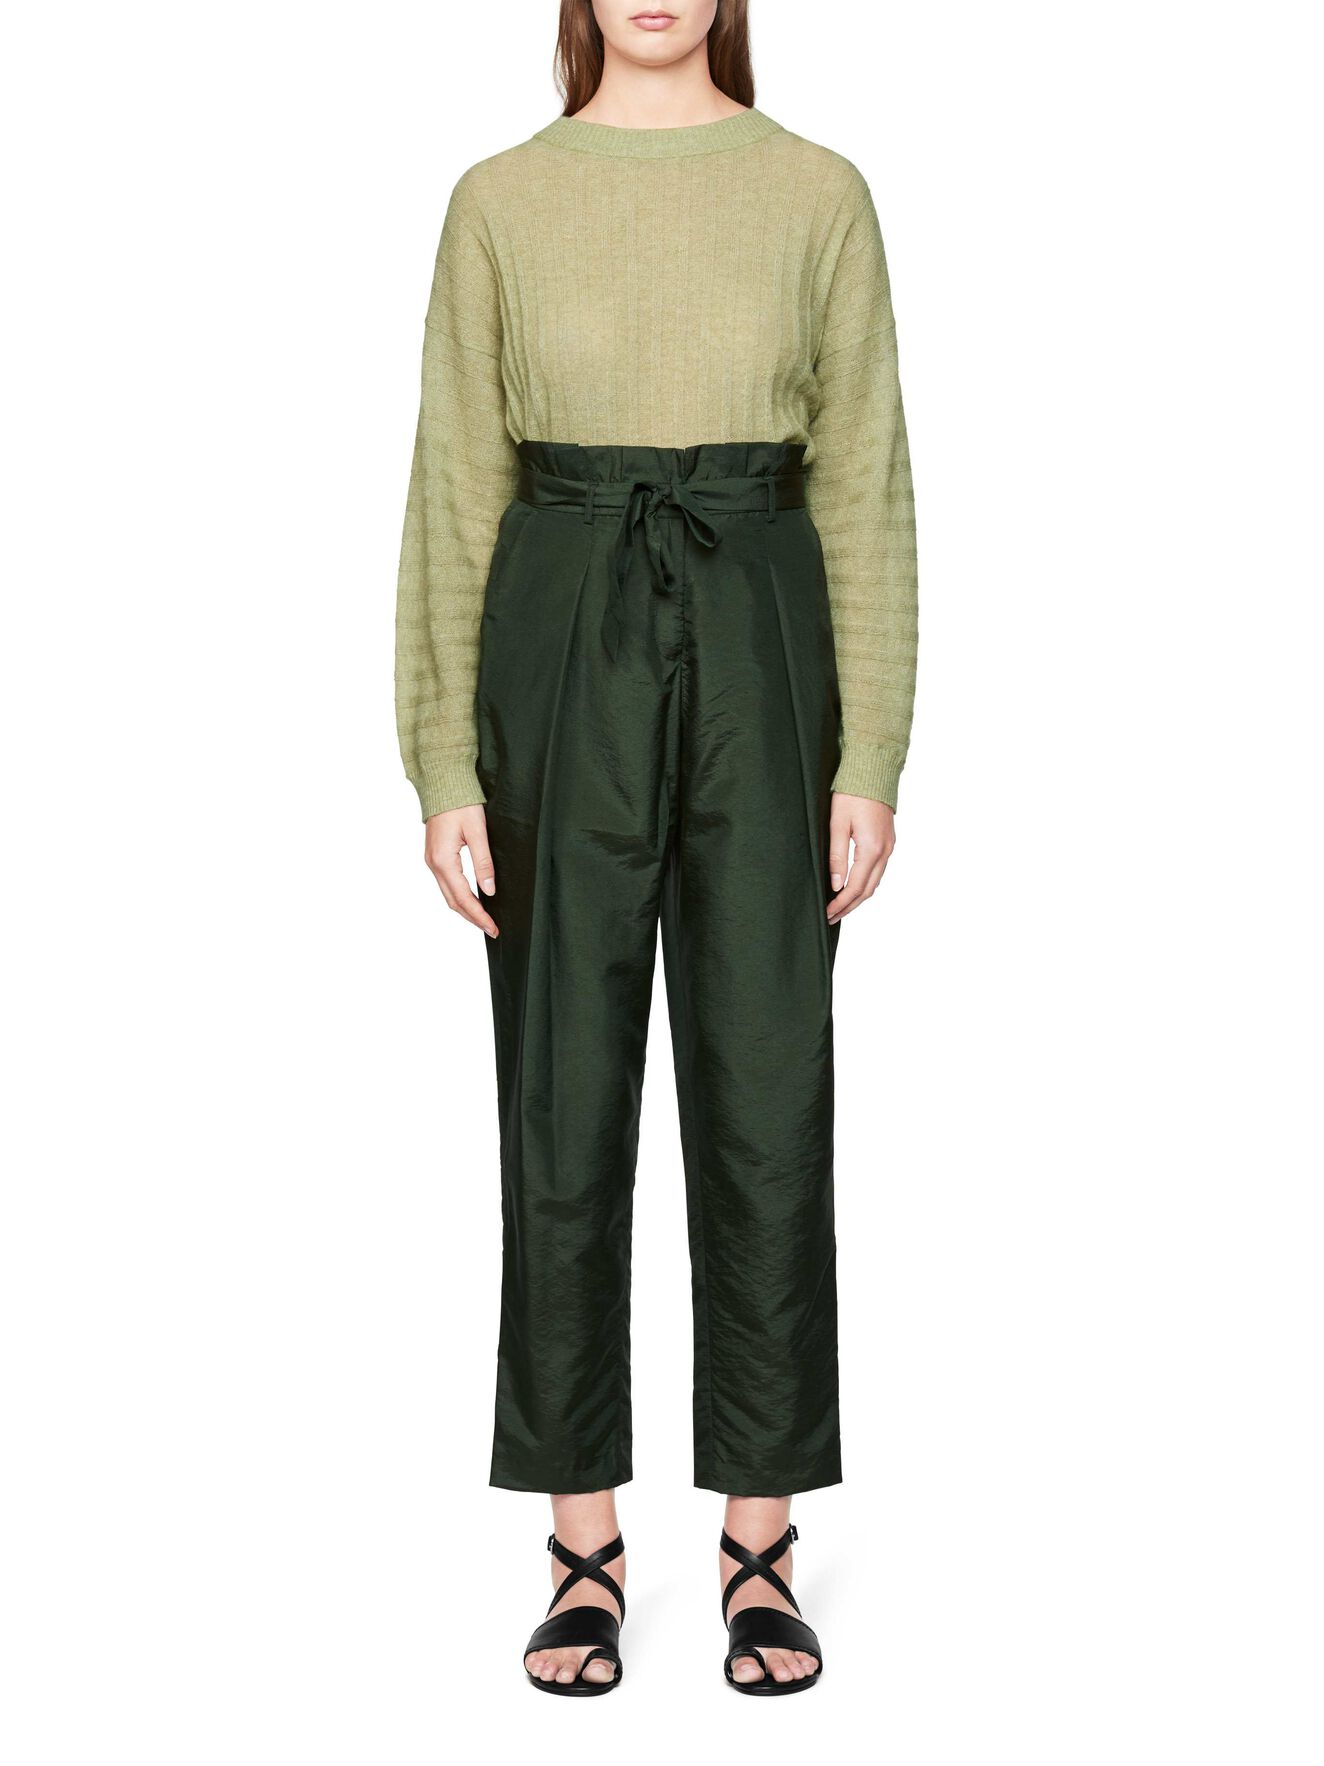 Aniara Trousers in Woodland from Tiger of Sweden